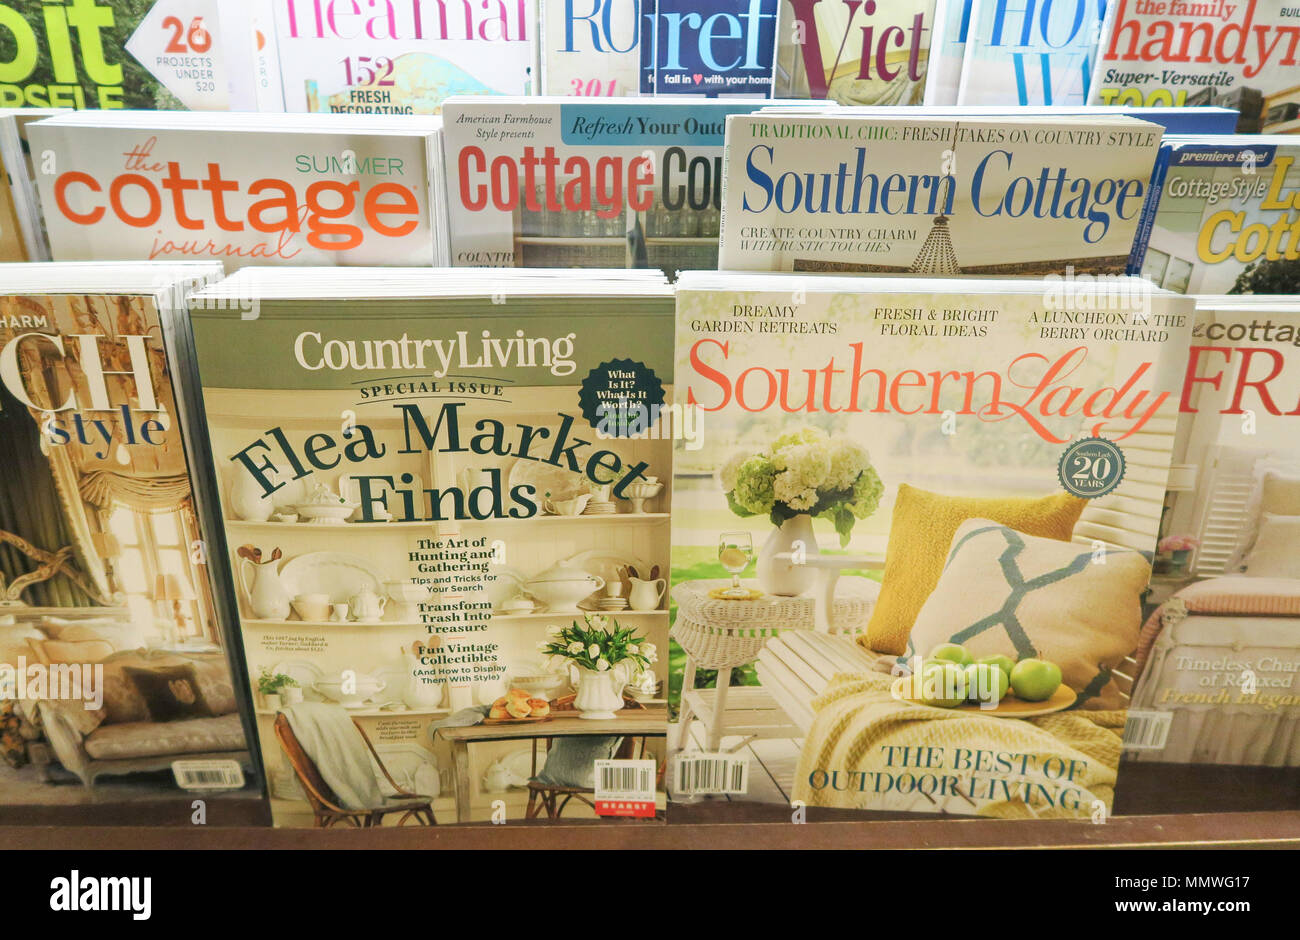 Magazine Stand Featuring Magazine Cover (Covers), USA - Stock Image